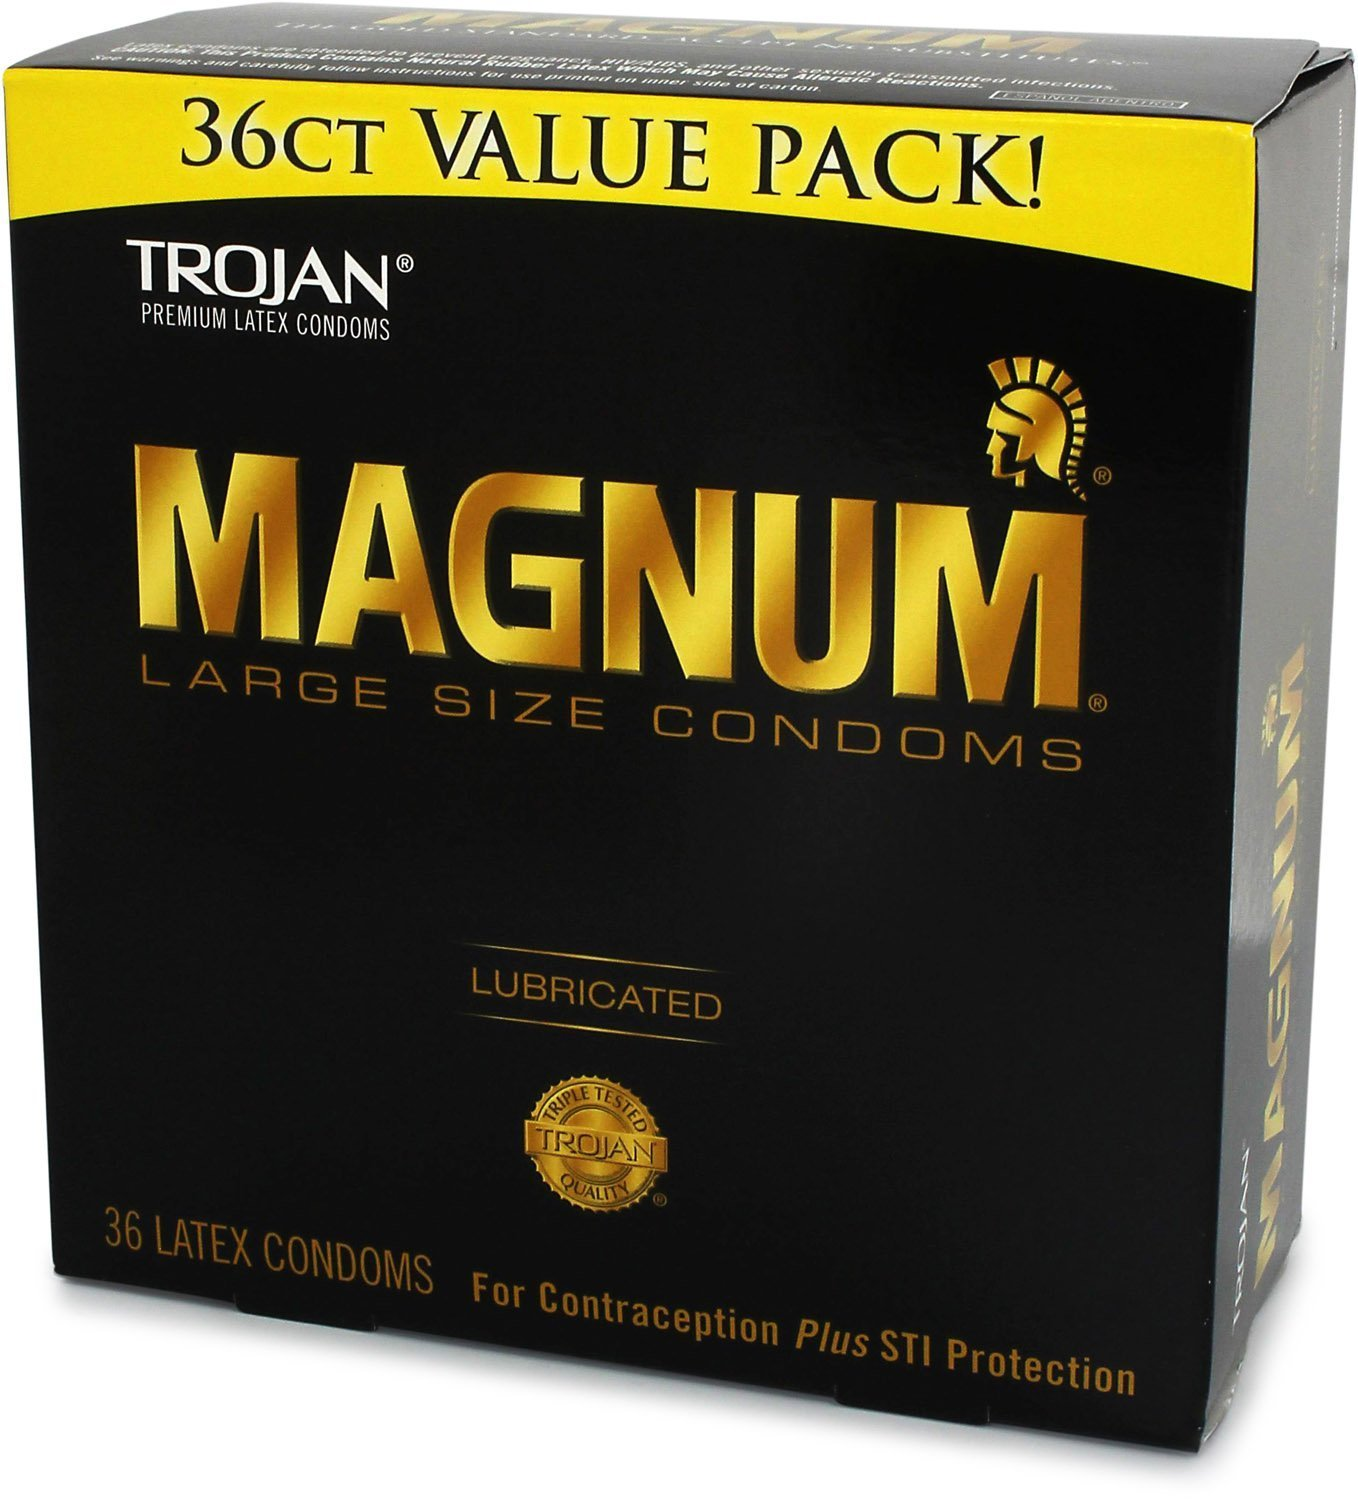 TROJAN Magnum Lubricated Latex Condoms, Large Size 36 ea. (Pack of 3) by Trojan